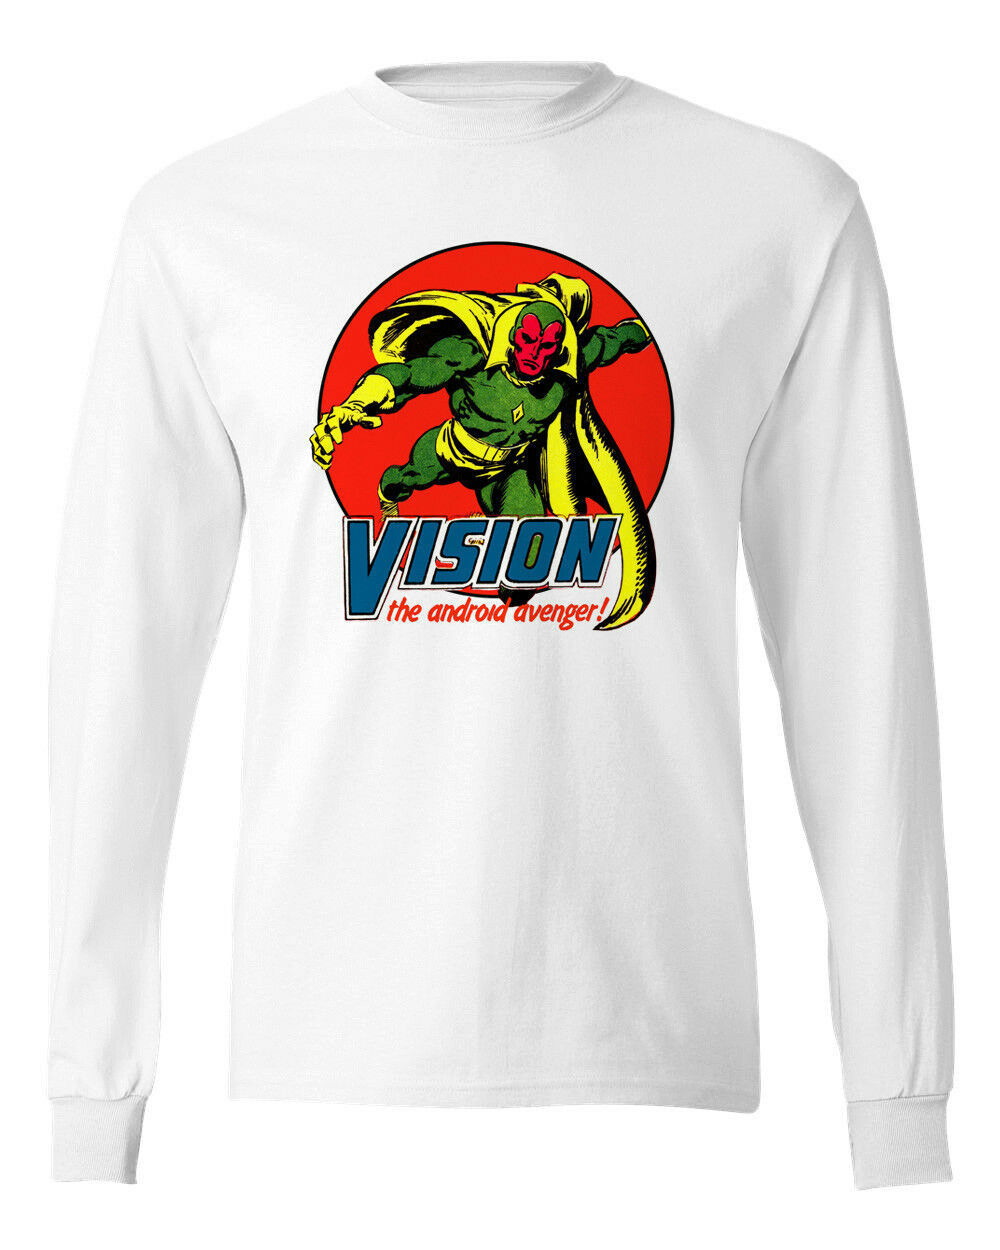 Vision Long Sleeve T-shirt  Marvel Comics 100% cotton graphic tee superhero